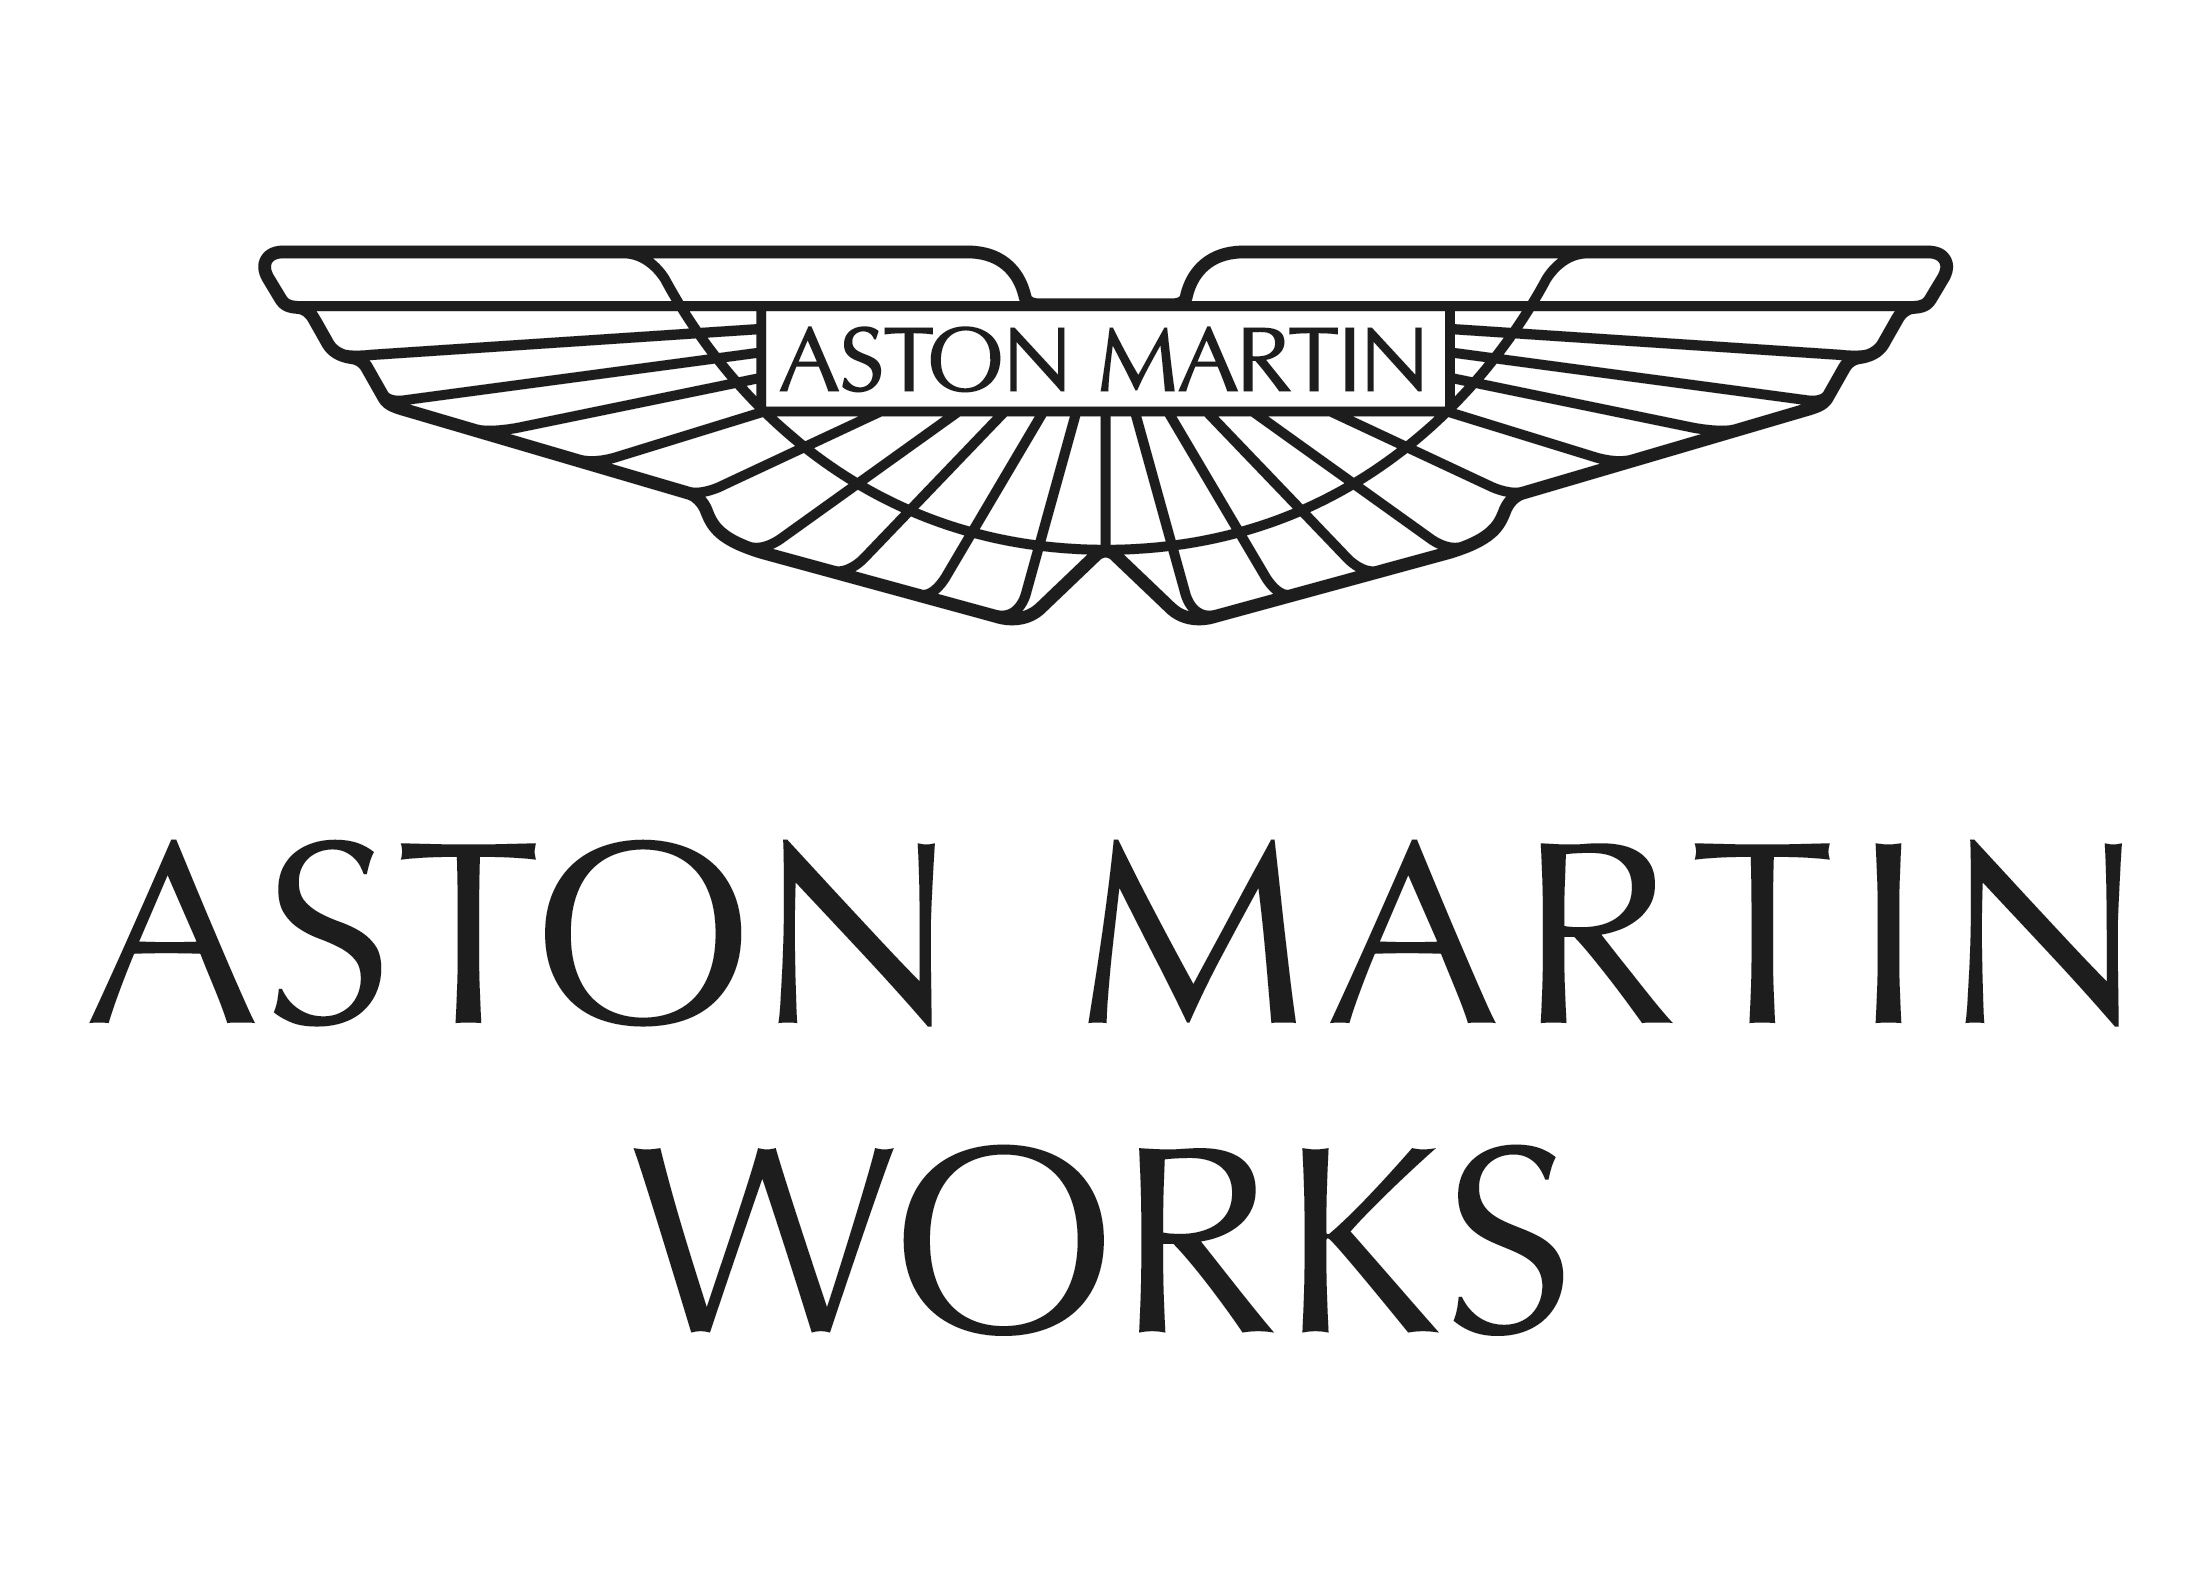 Used Aston Martin DB6 cars for sale with PistonHeads